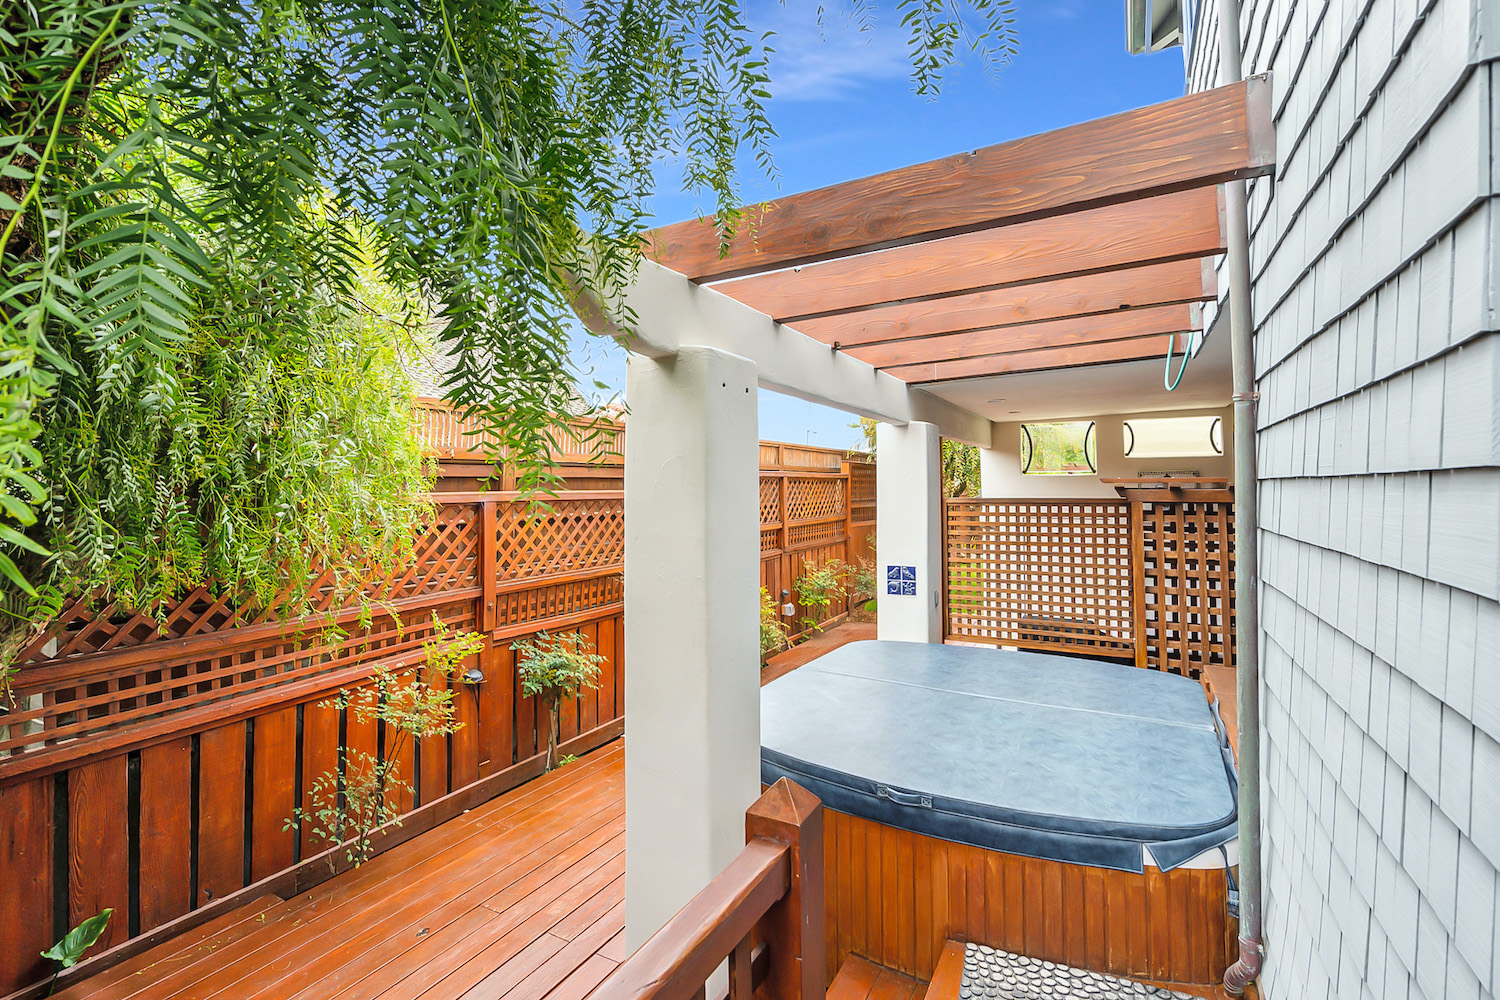 127 bethany curve - patio with hot tub